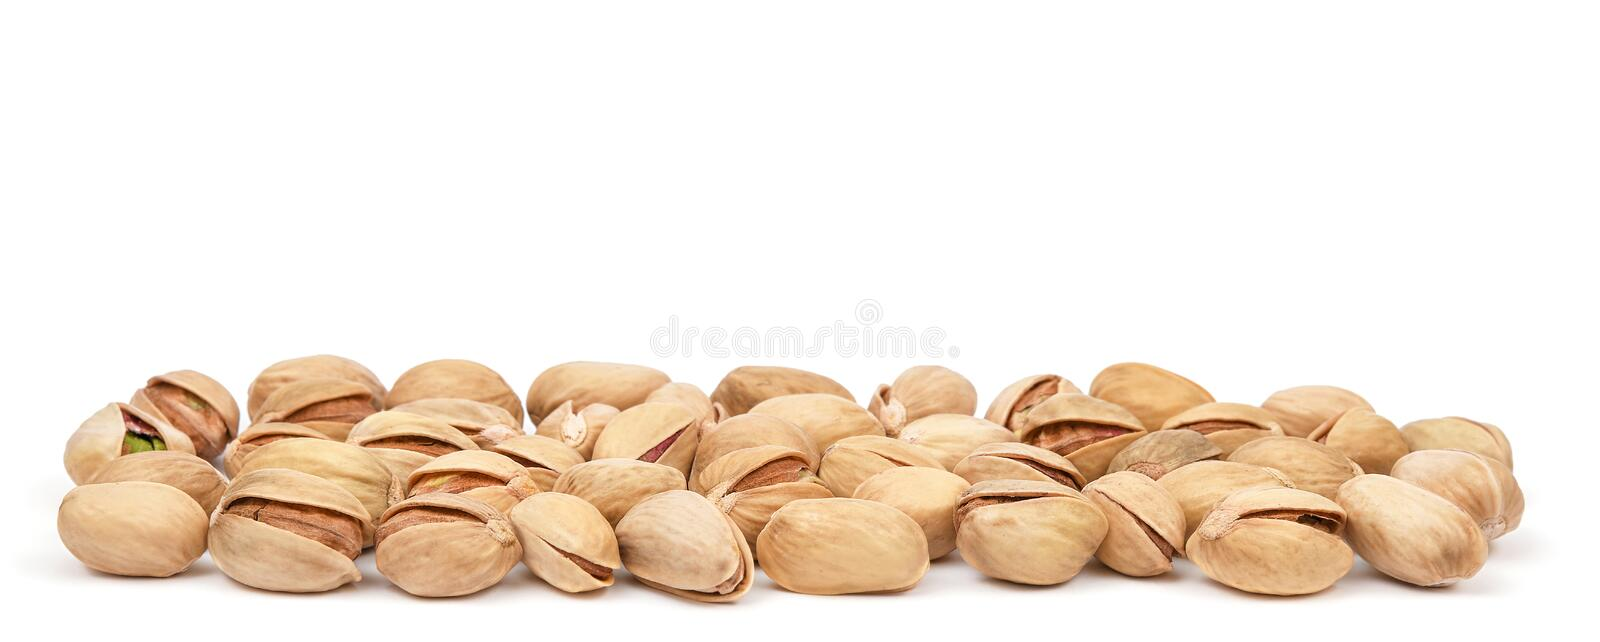 Pistachio heap isolated on white background. Pistachios panorama. Nuts pile.  royalty free stock photography